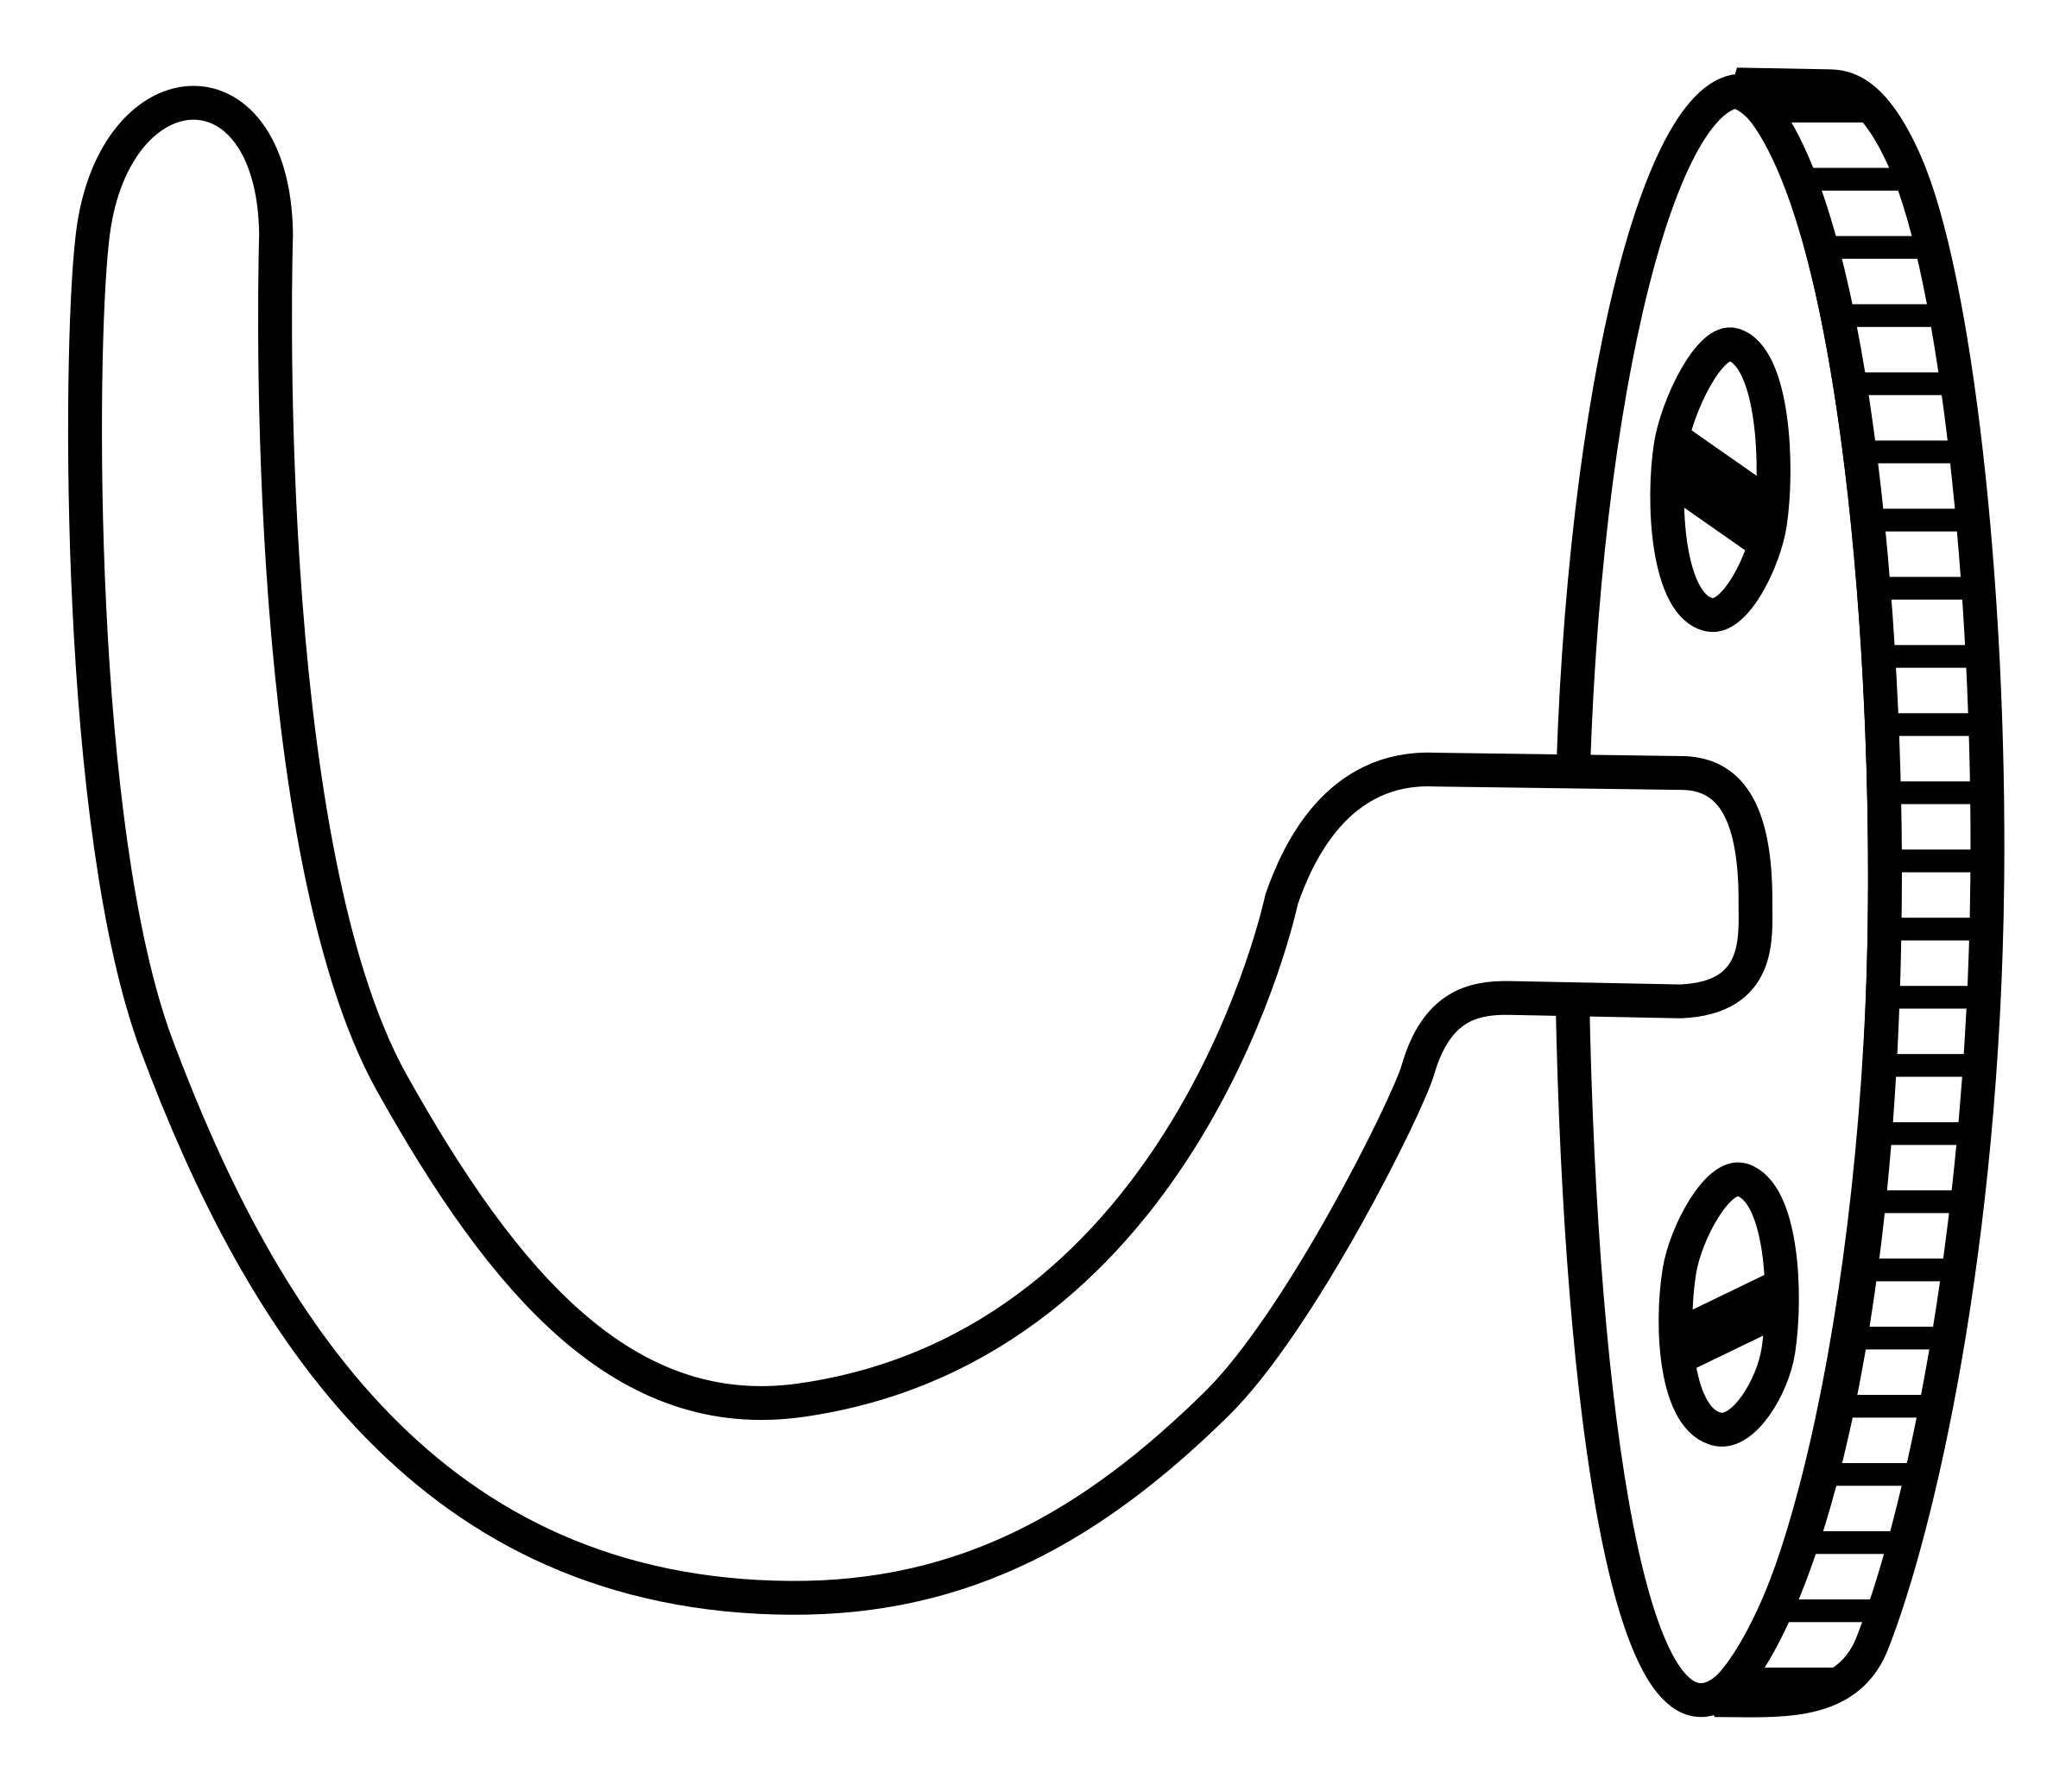 Hook clipart black and white.